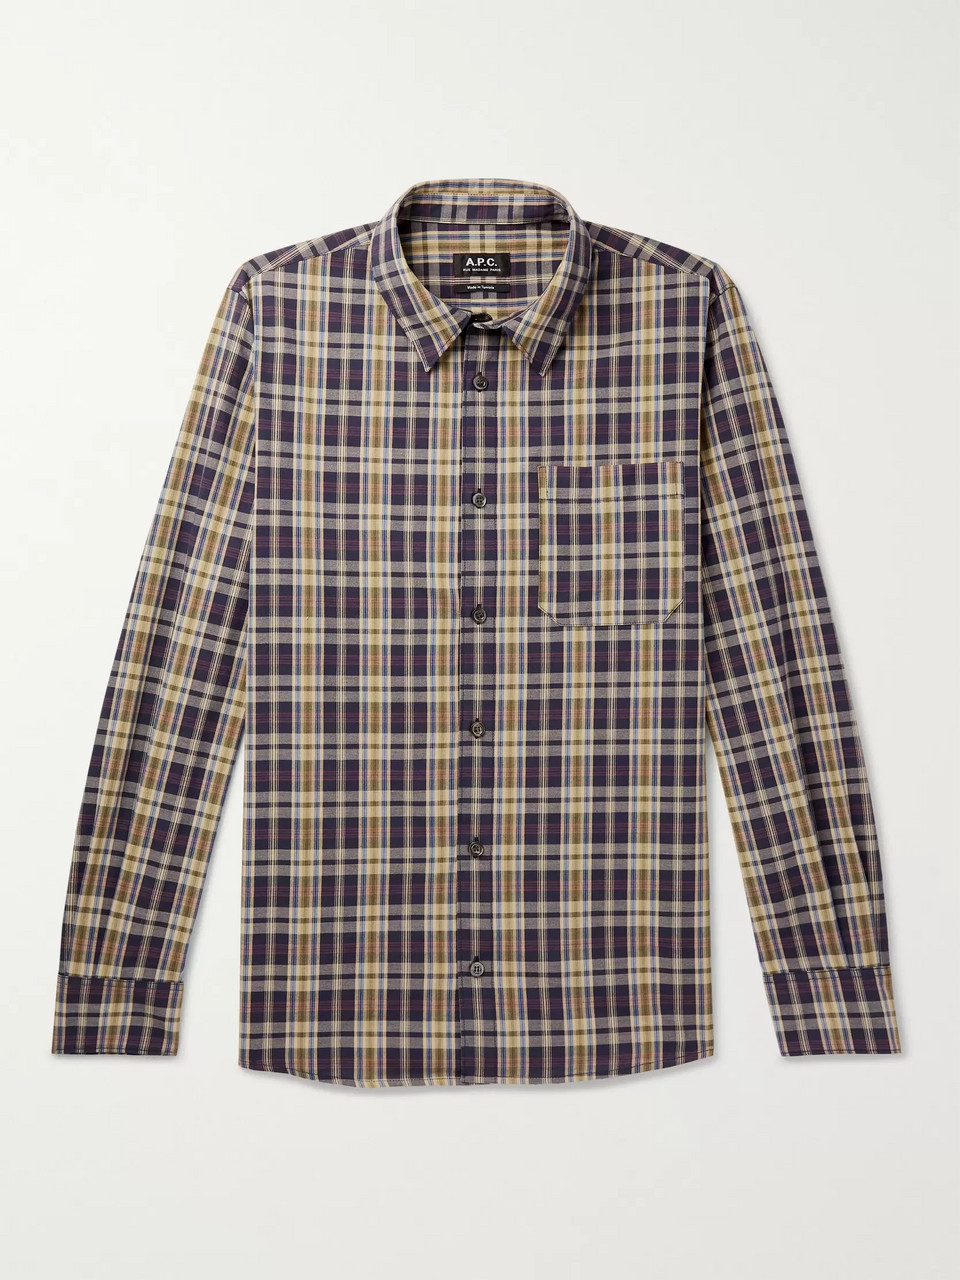 A.P.C. Atelier Checked Cotton-Poplin Shirt